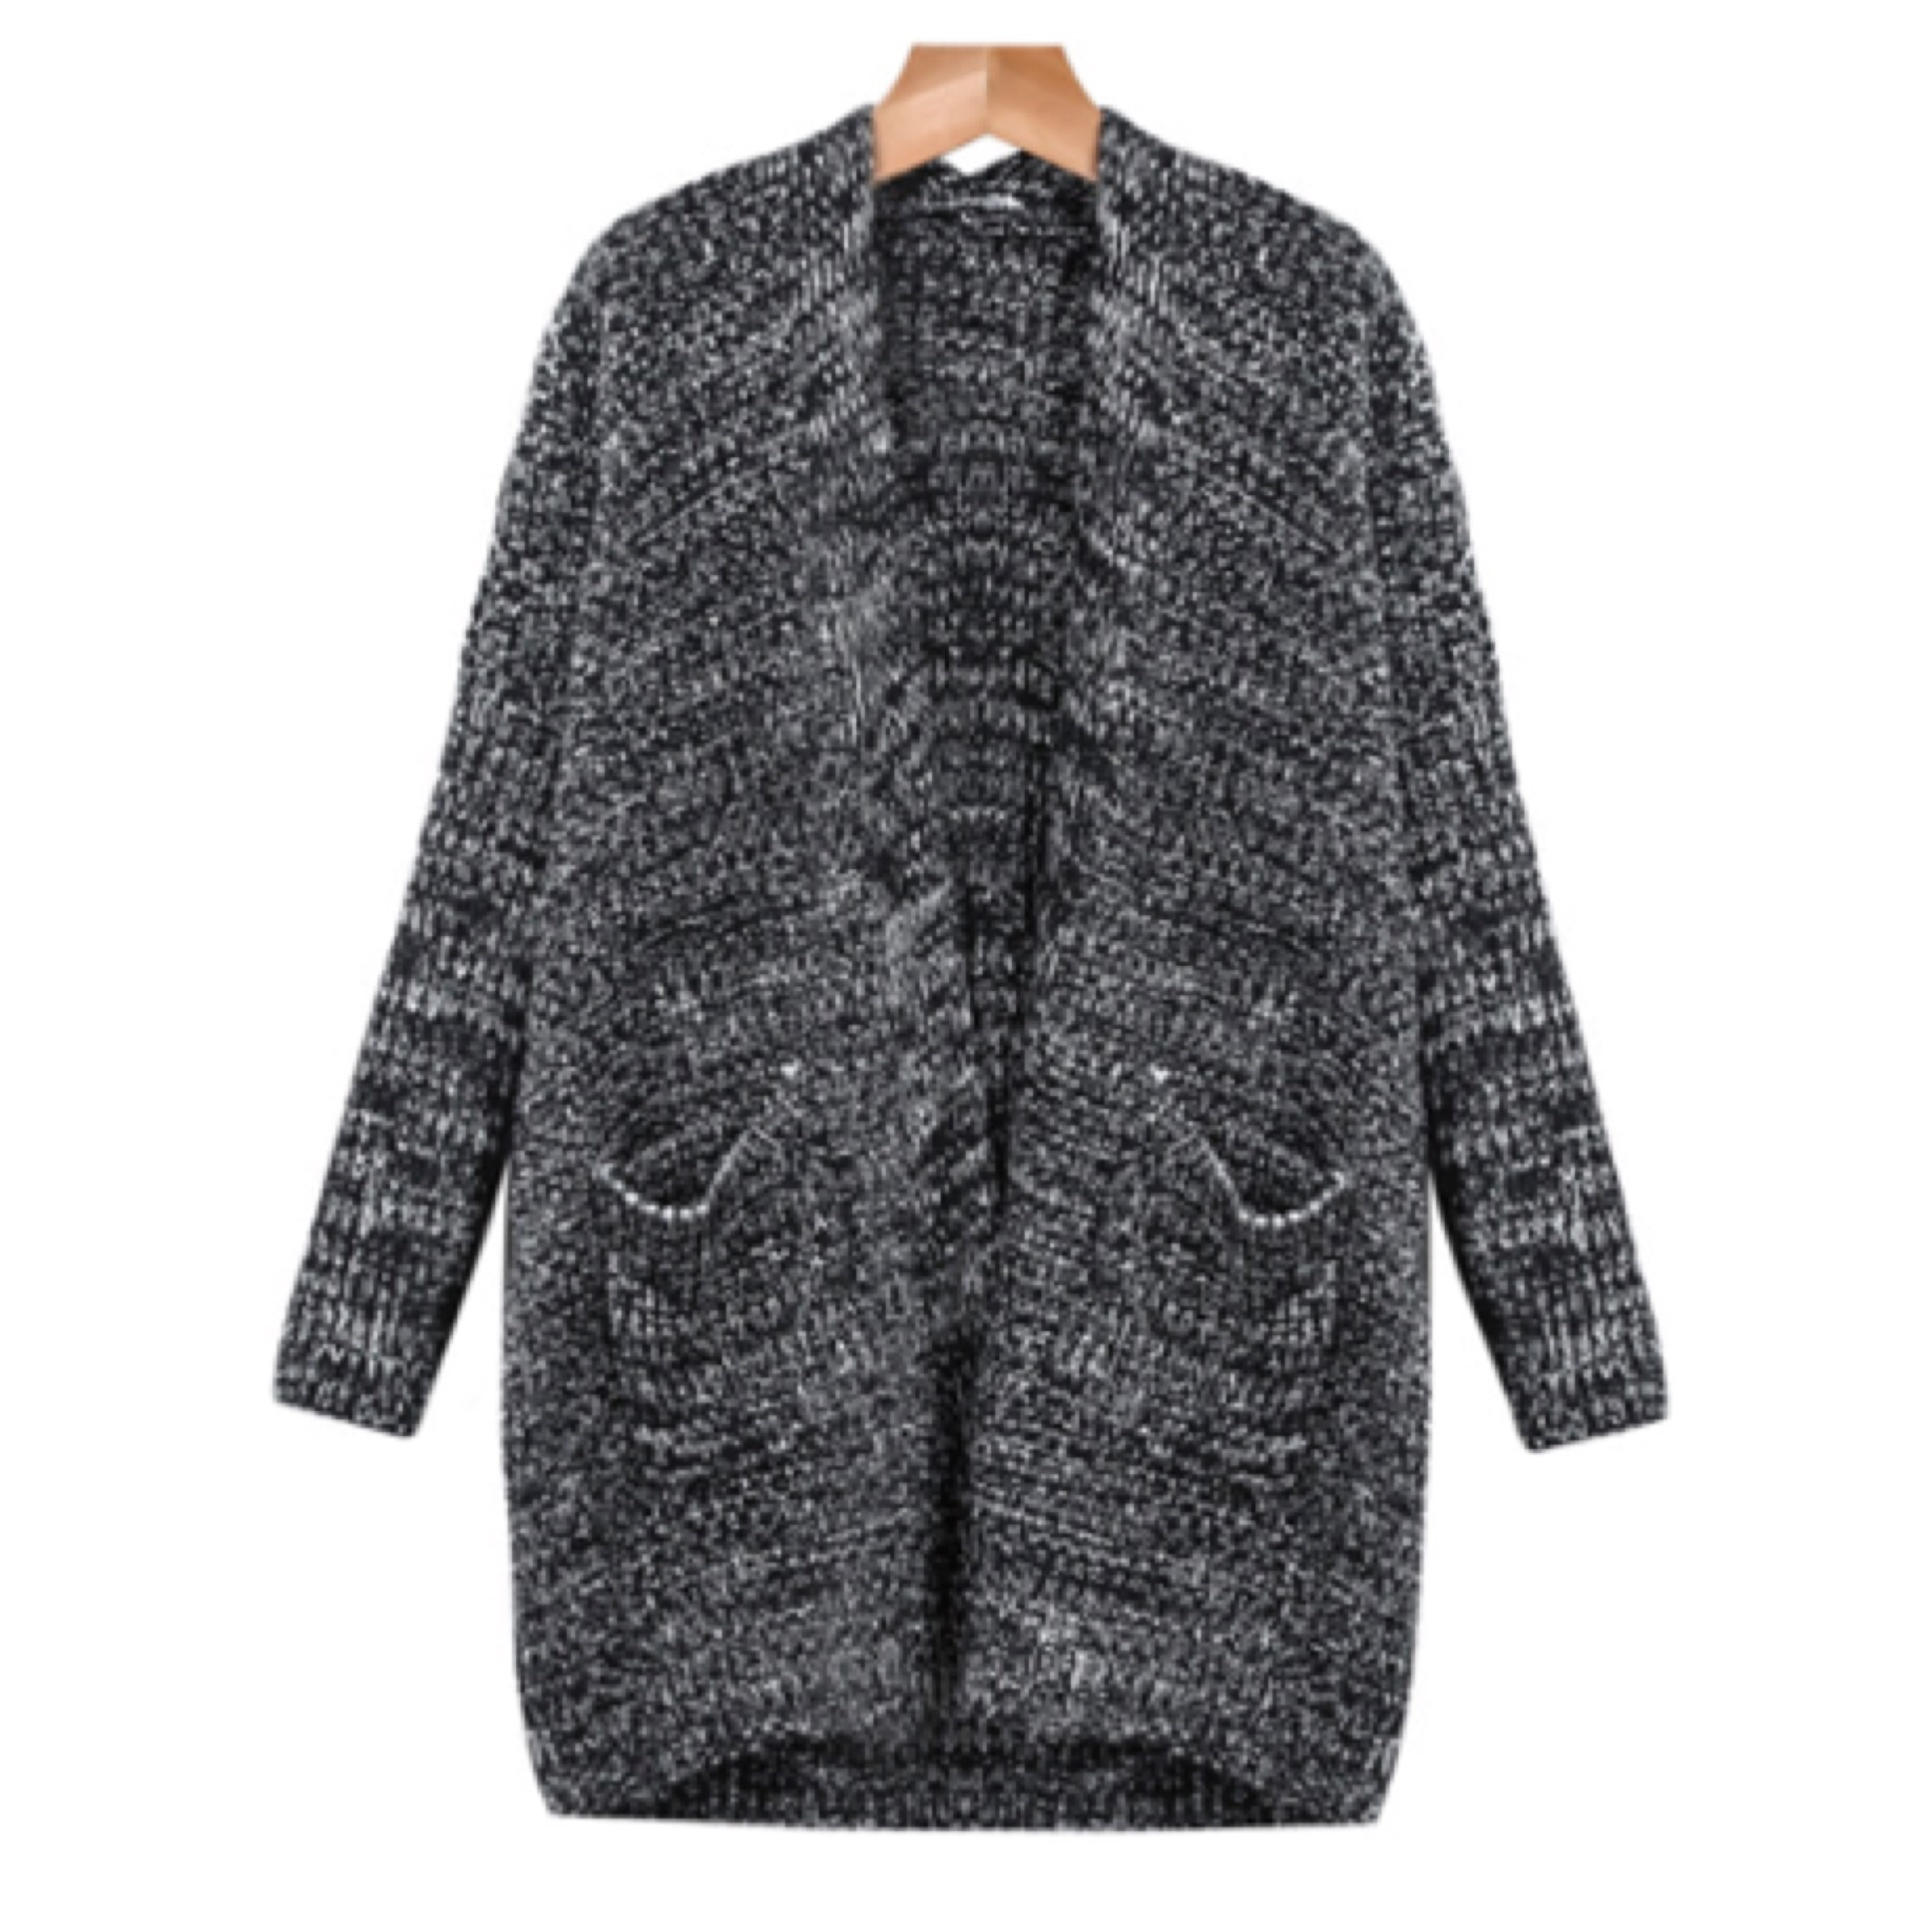 Knitted oversized cardigan with pockets